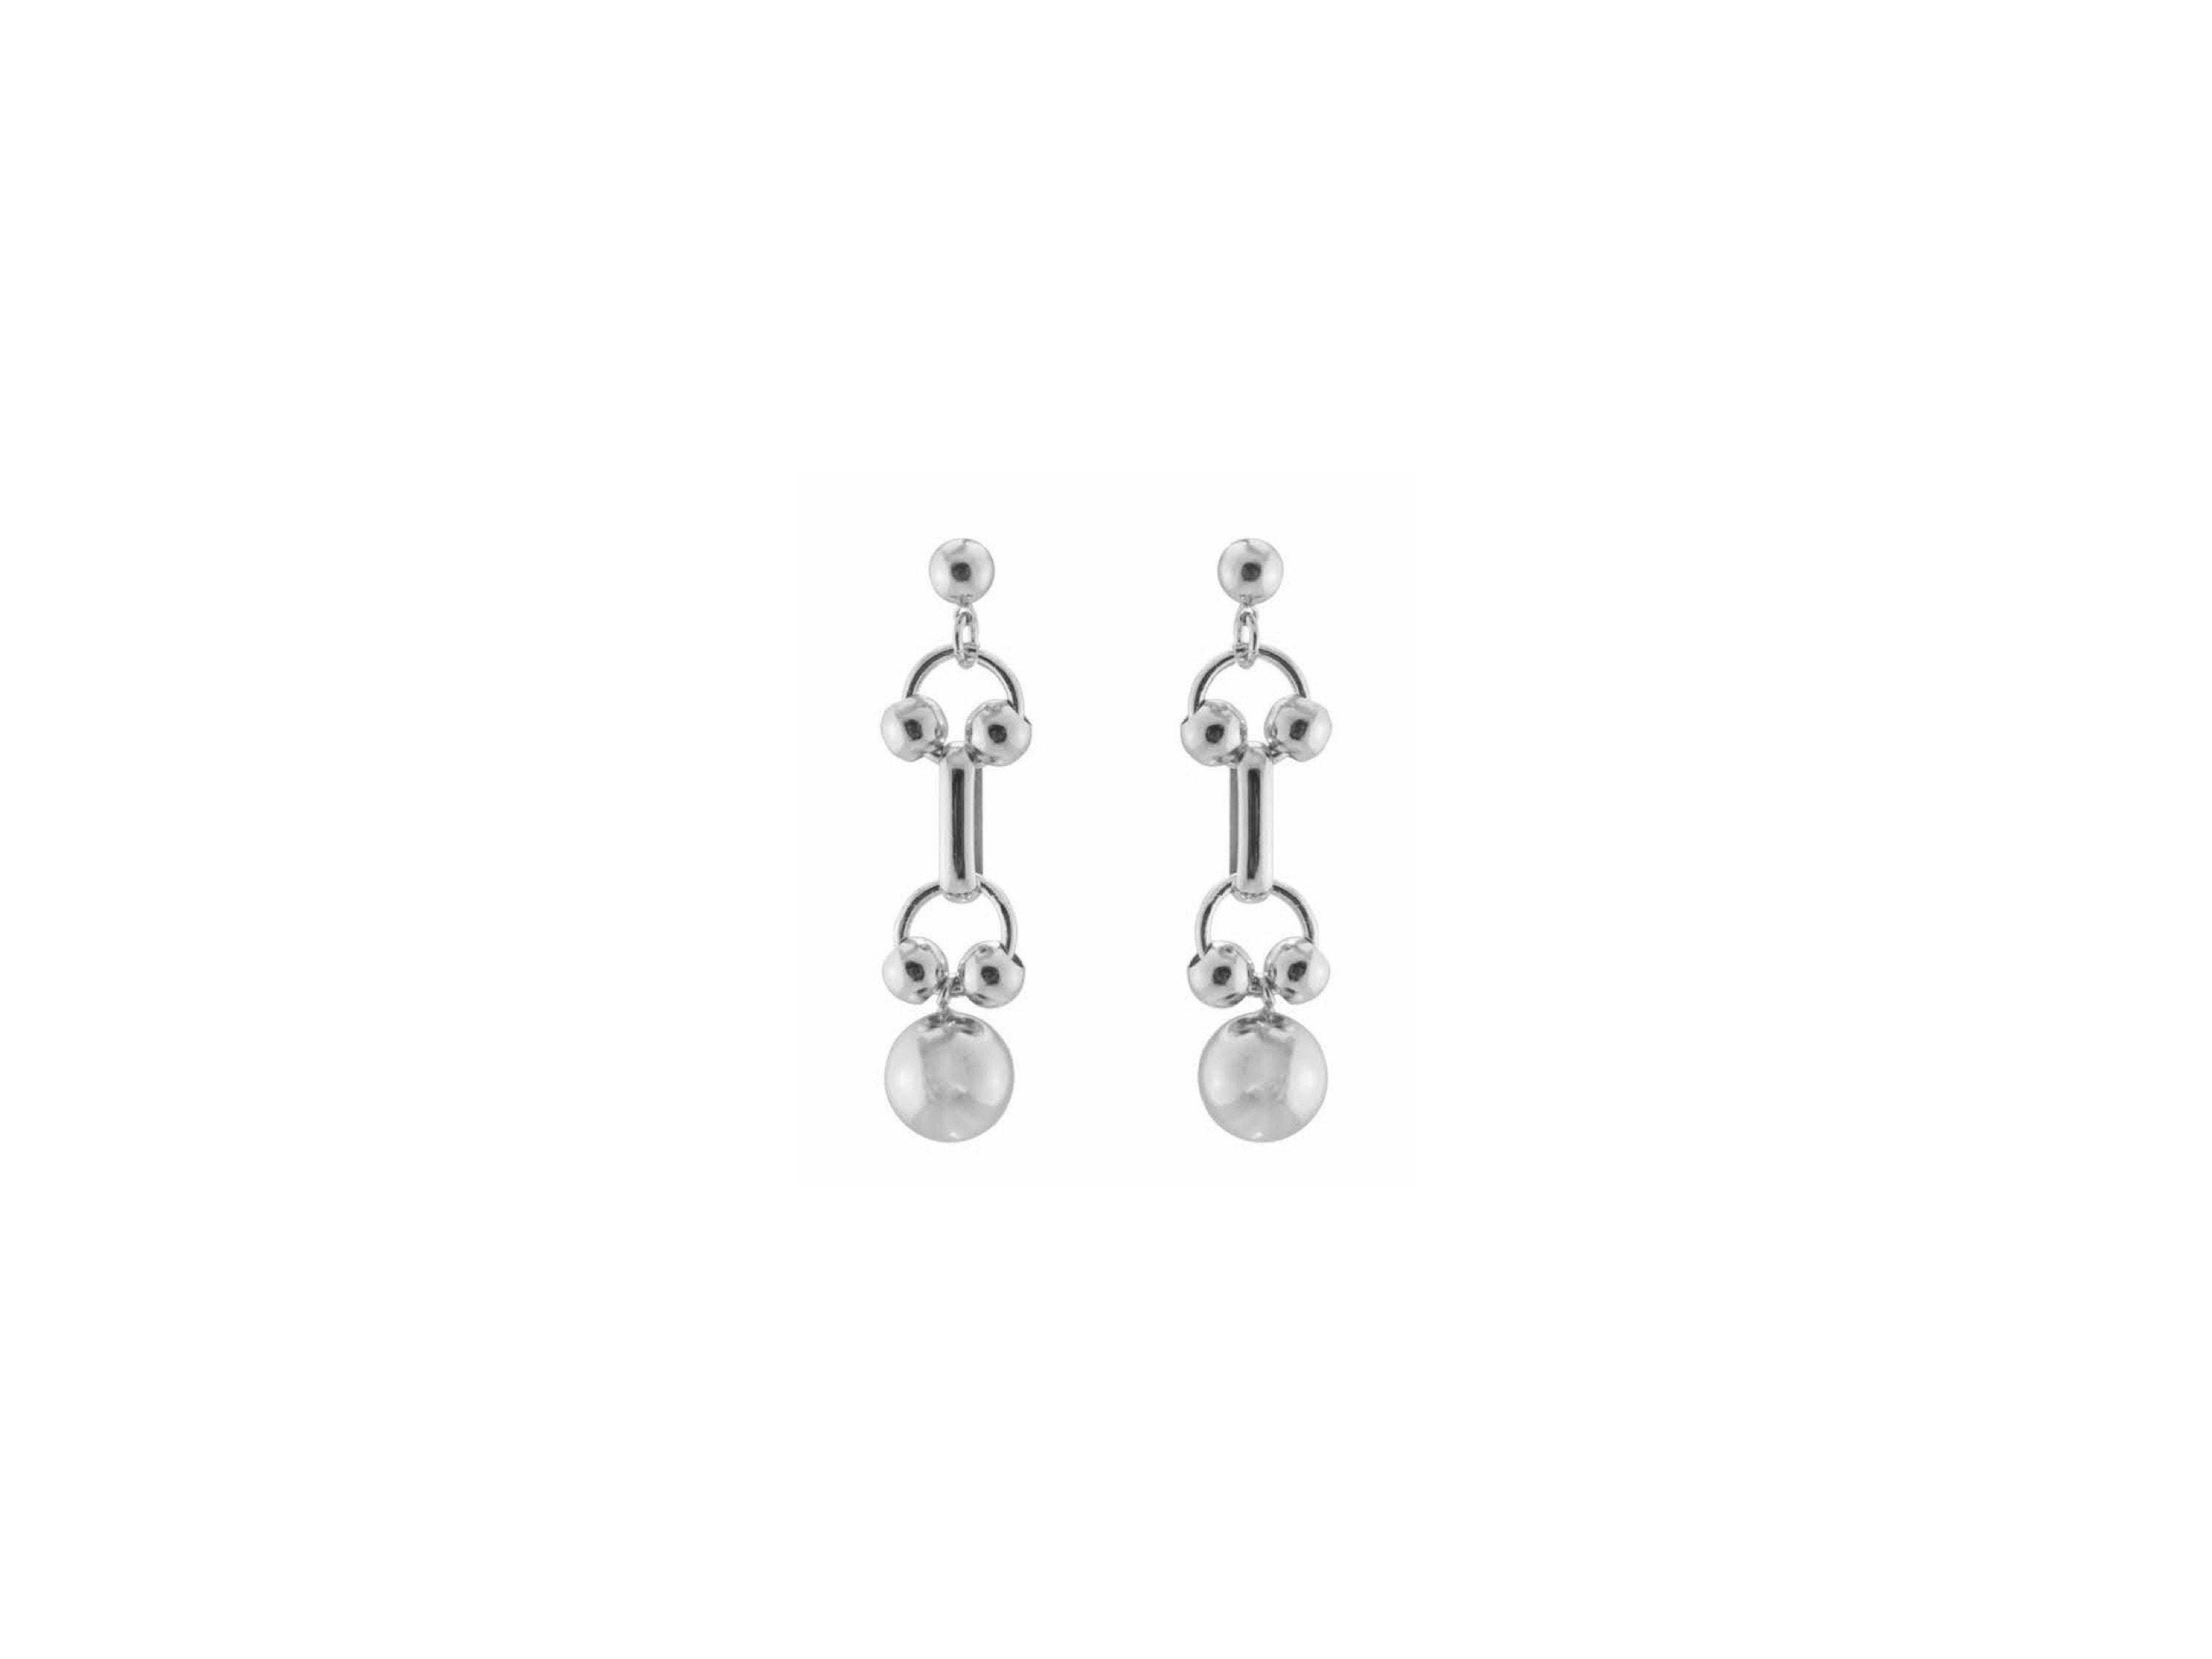 Regio Earrings / Silver